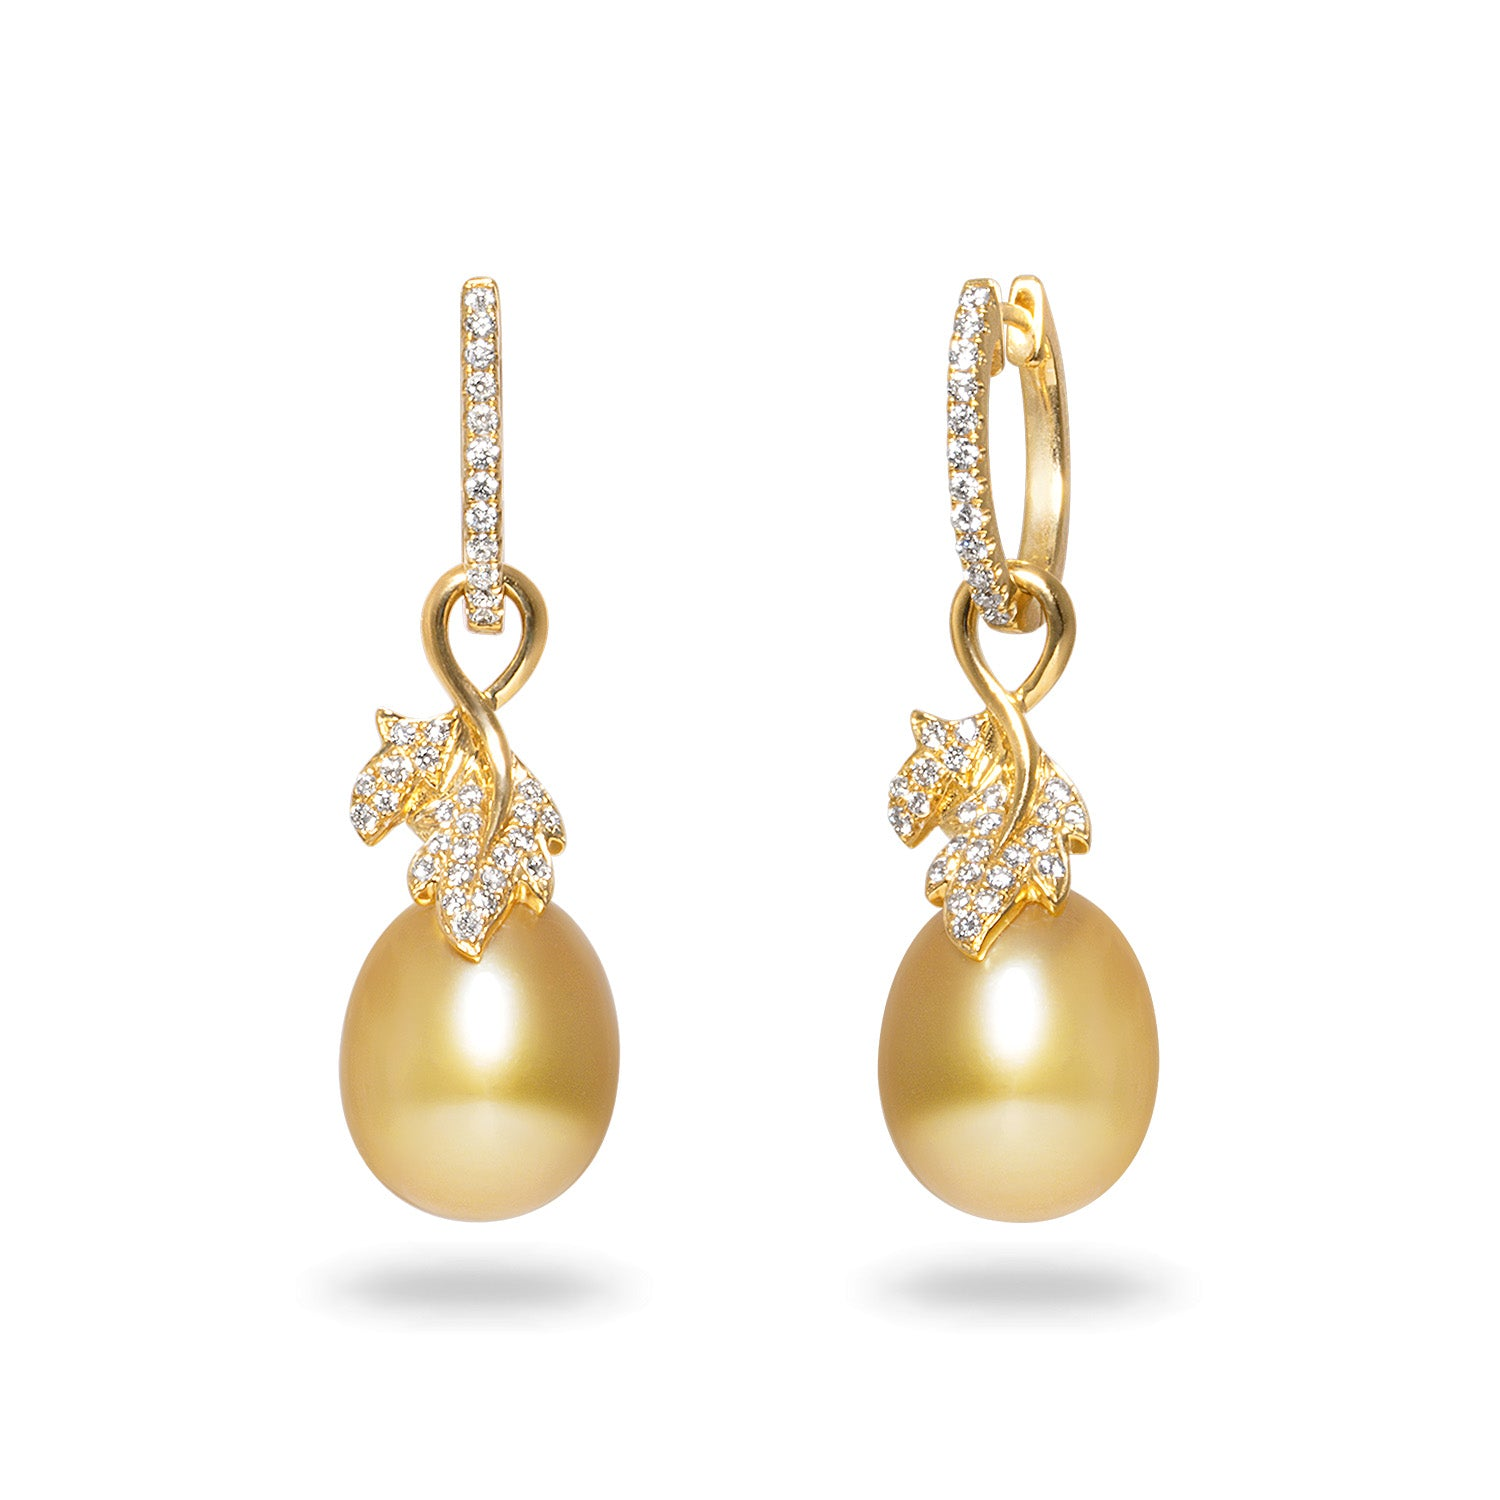 Leaf Collection 10-11mm Golden South Sea Pearl and Diamond Earrings